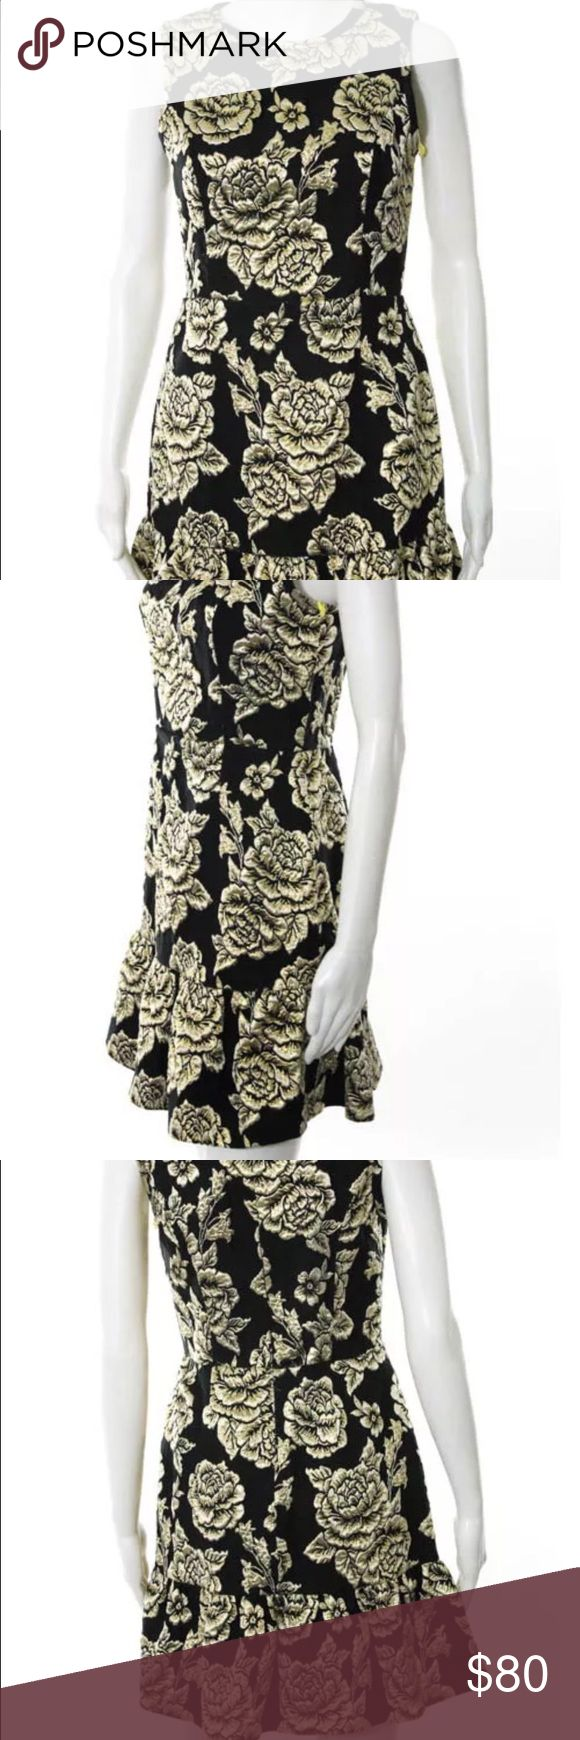 CeCe Dress Black Gold Embroidered Night Out Dress CeCe by Cynthia Steffe Dresses Mini